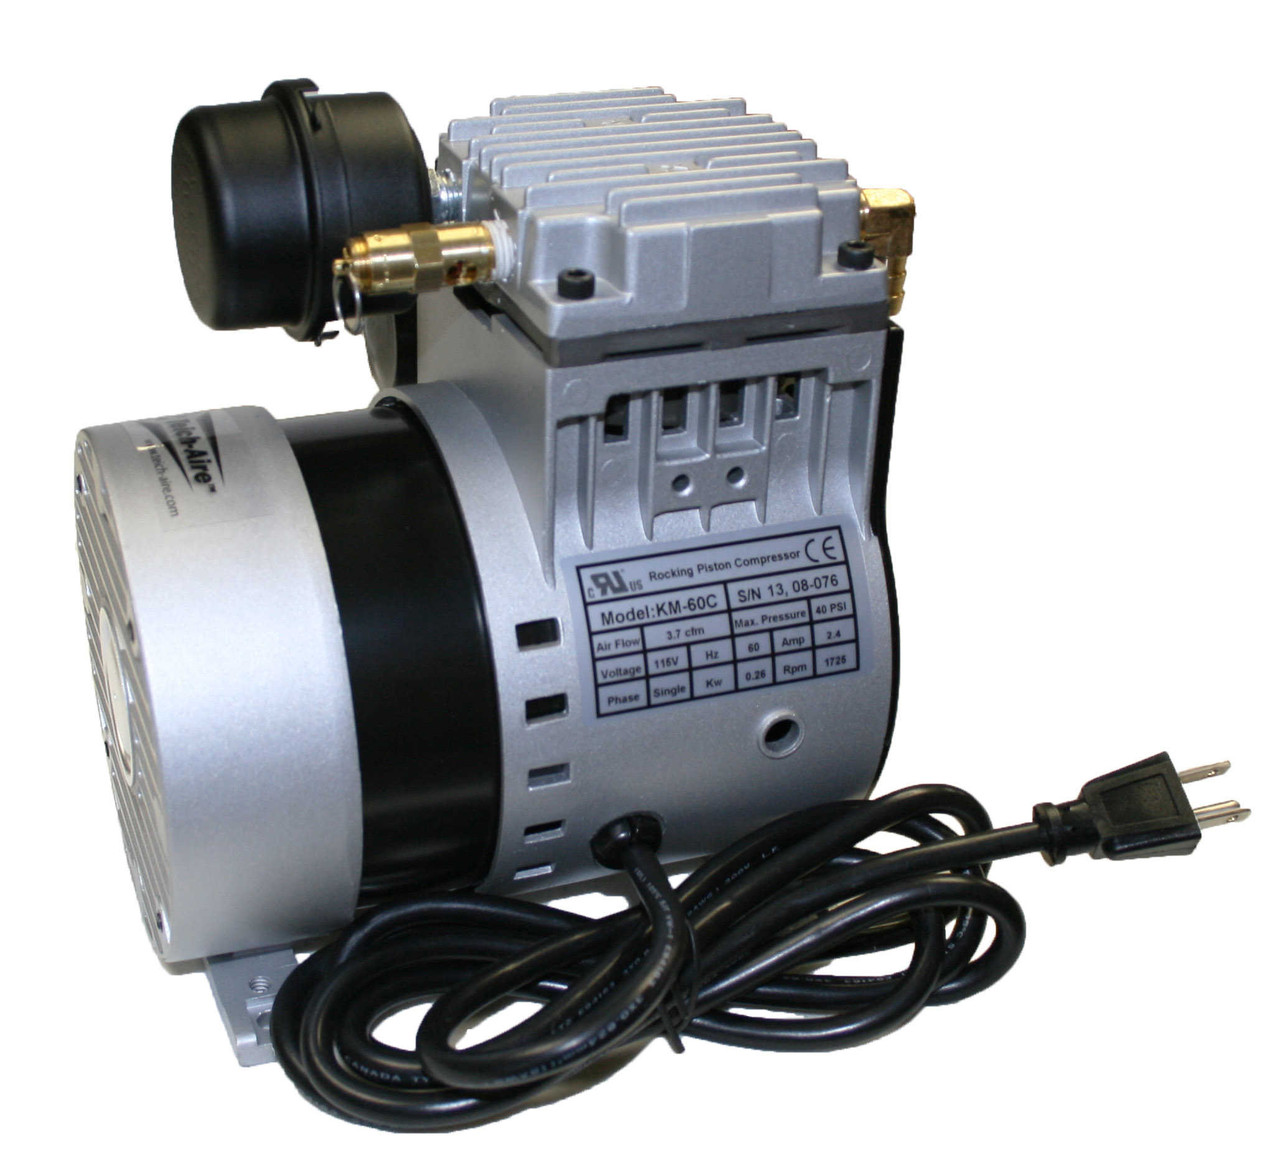 KM-60 1/4 HP Compressor